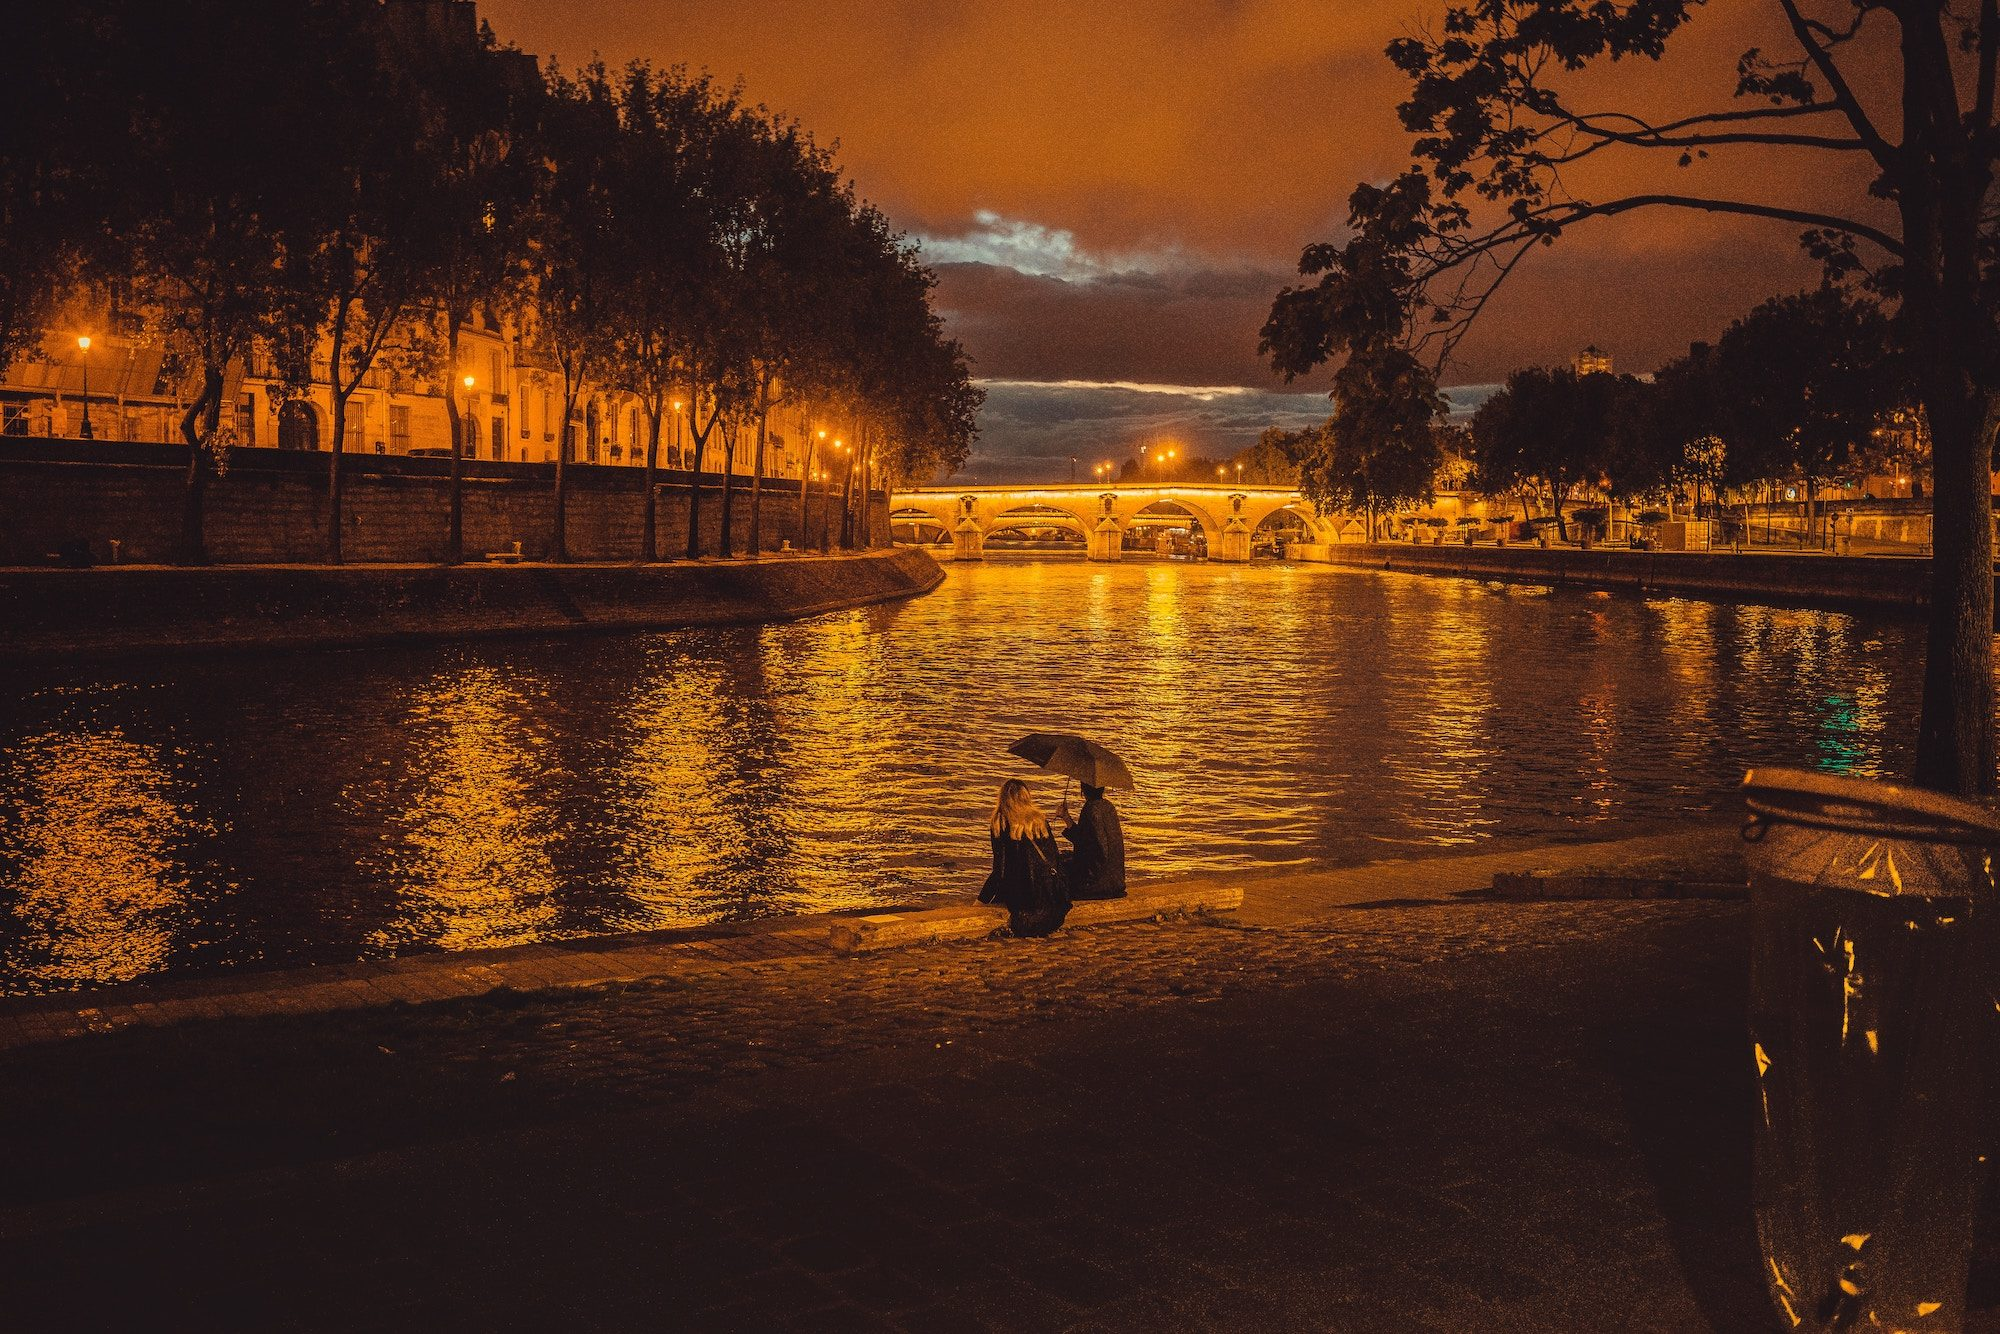 A couple having a date in the rain, sitting on the banks of the River Seine.